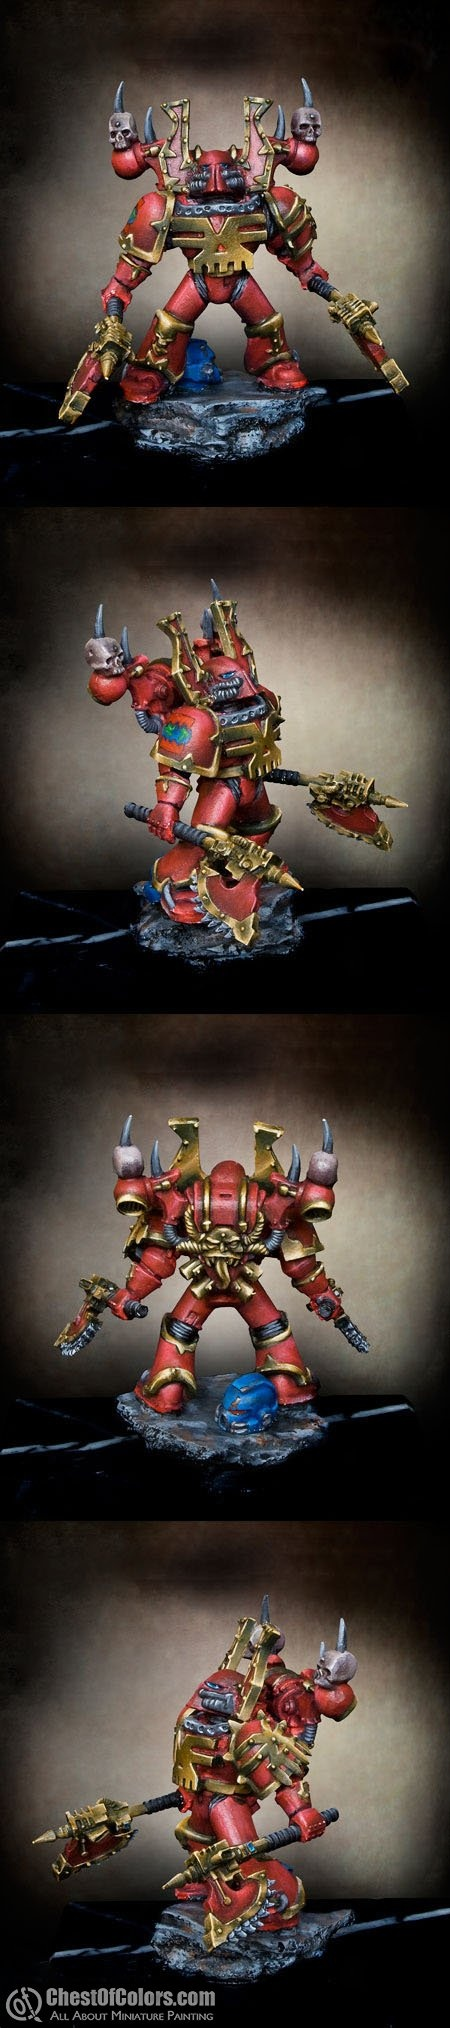 Games workshop colorado - Khorne Bezerker Champion Painted And Converted By The Chest Of Colors Team The Chest May Game Workshopwarhammer